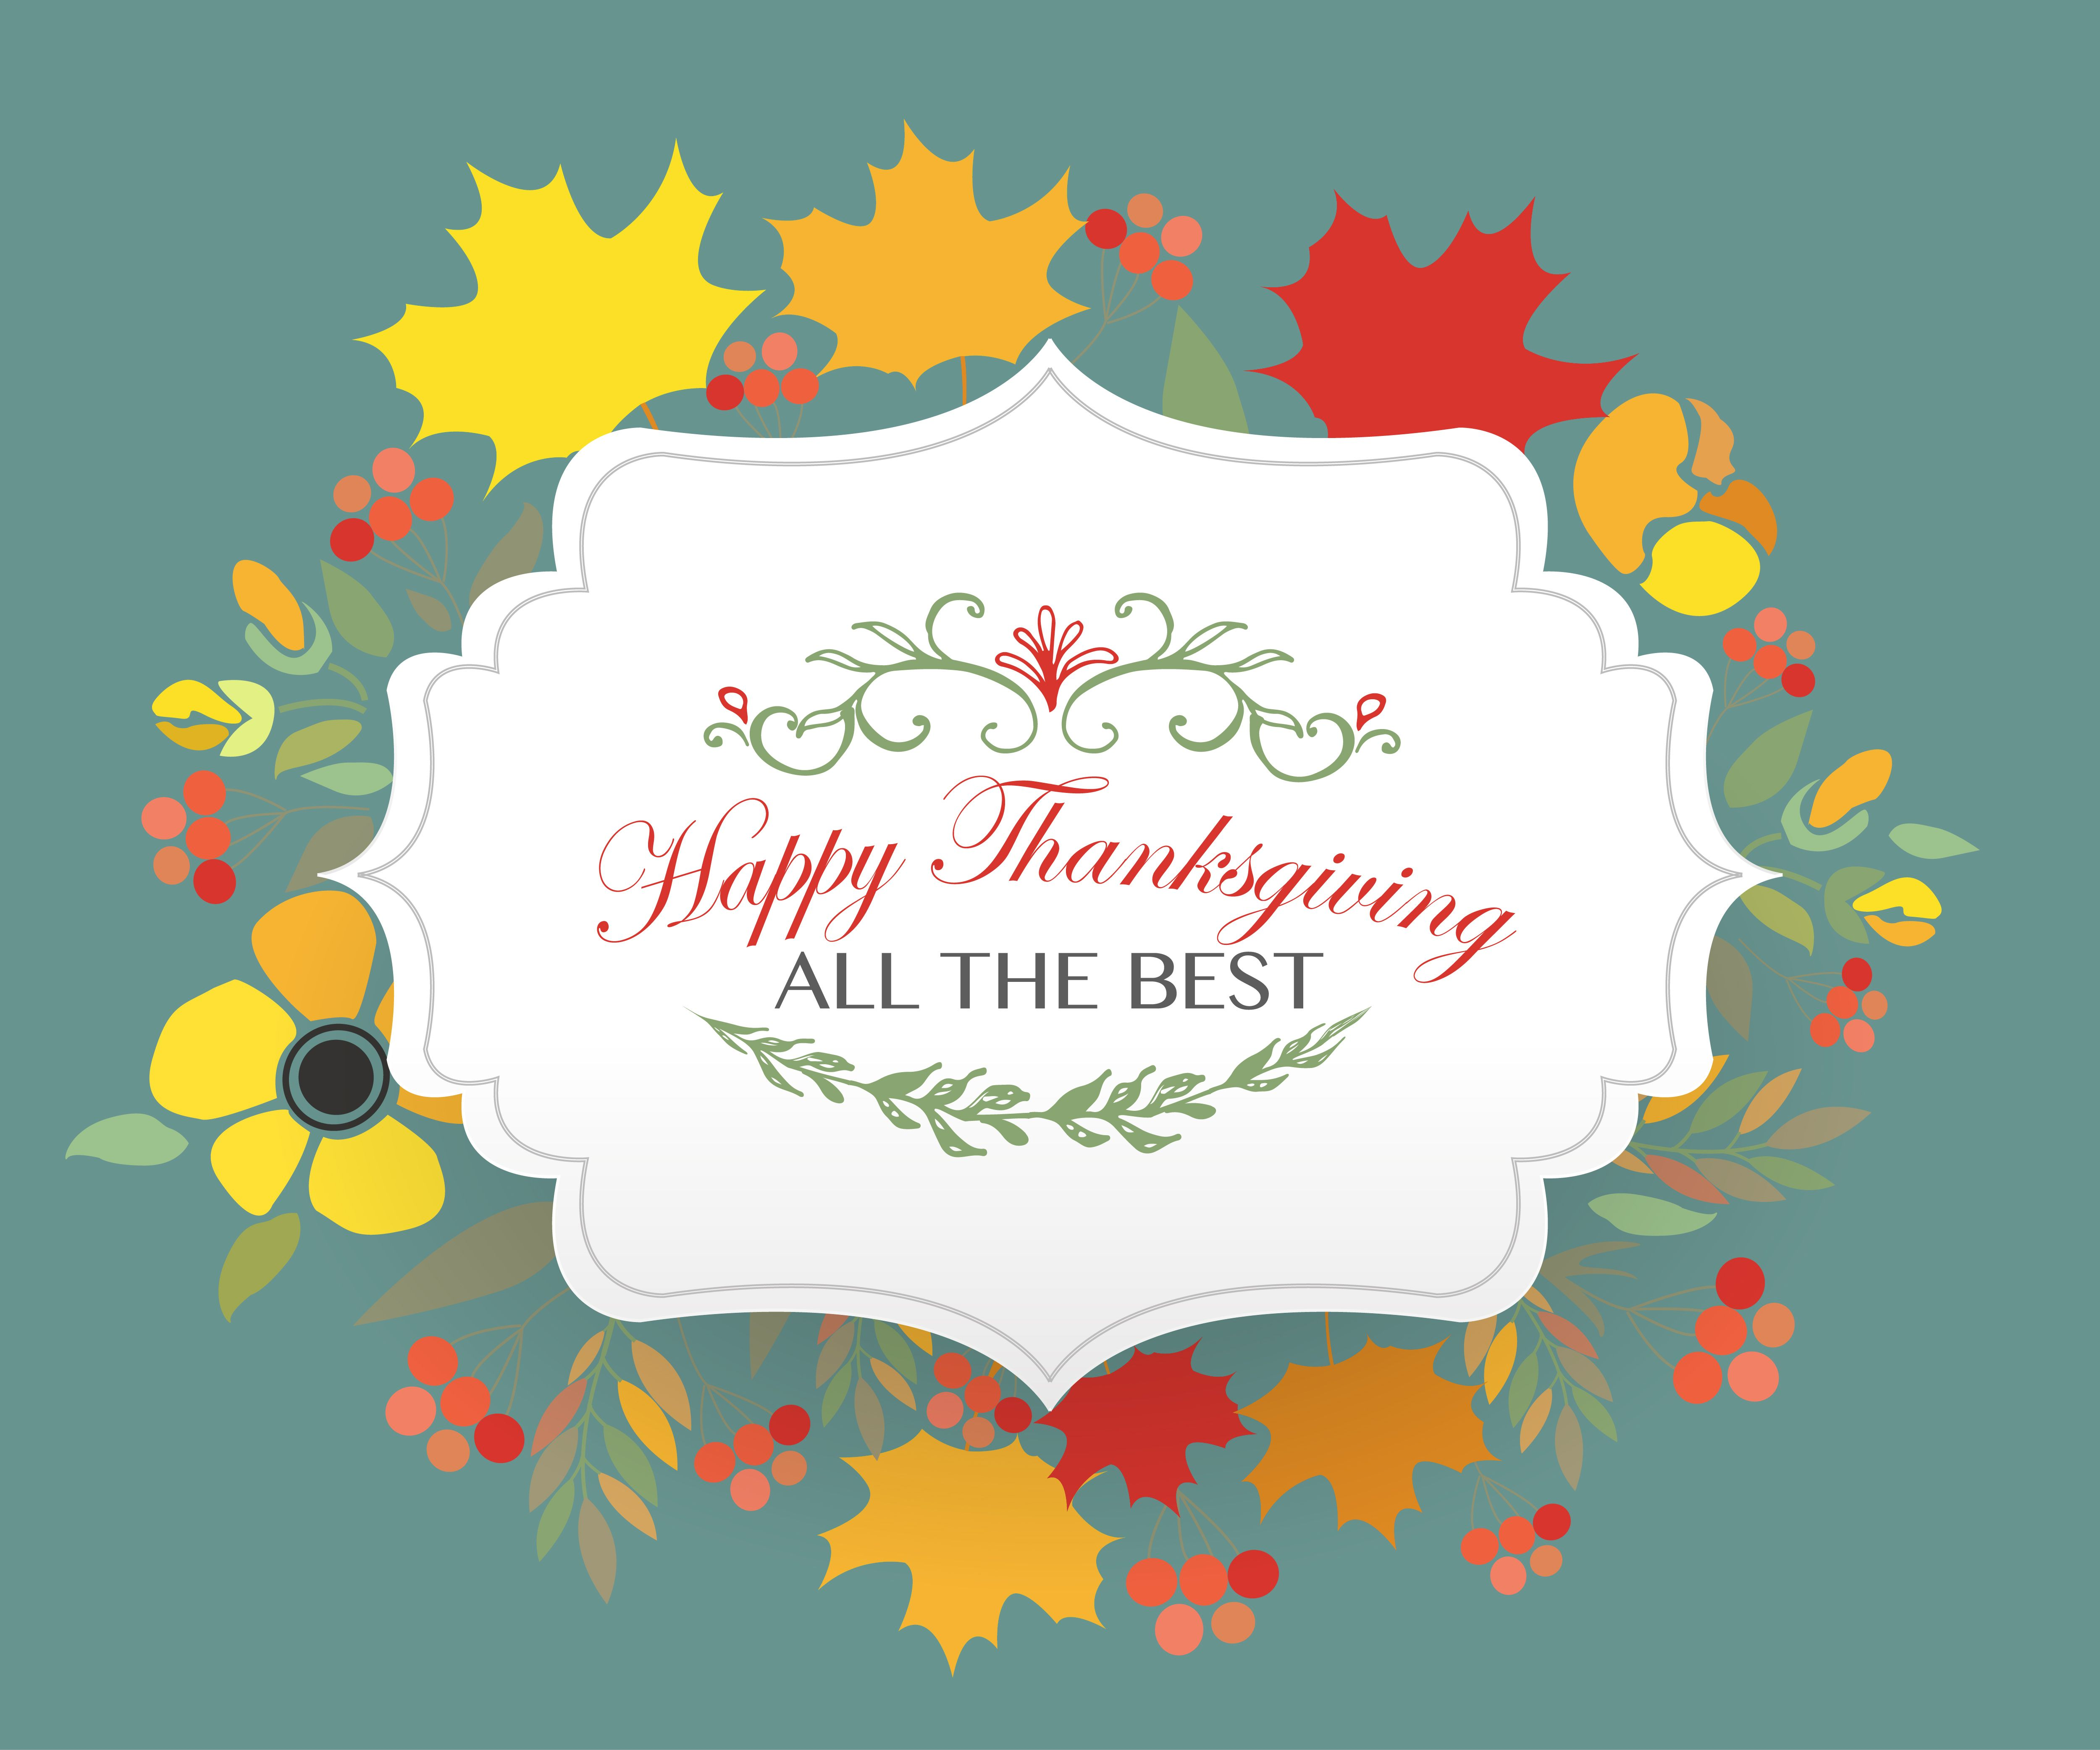 Happy Thanksgiving Card Template Pinterest Card Templates And - Thanksgiving card template